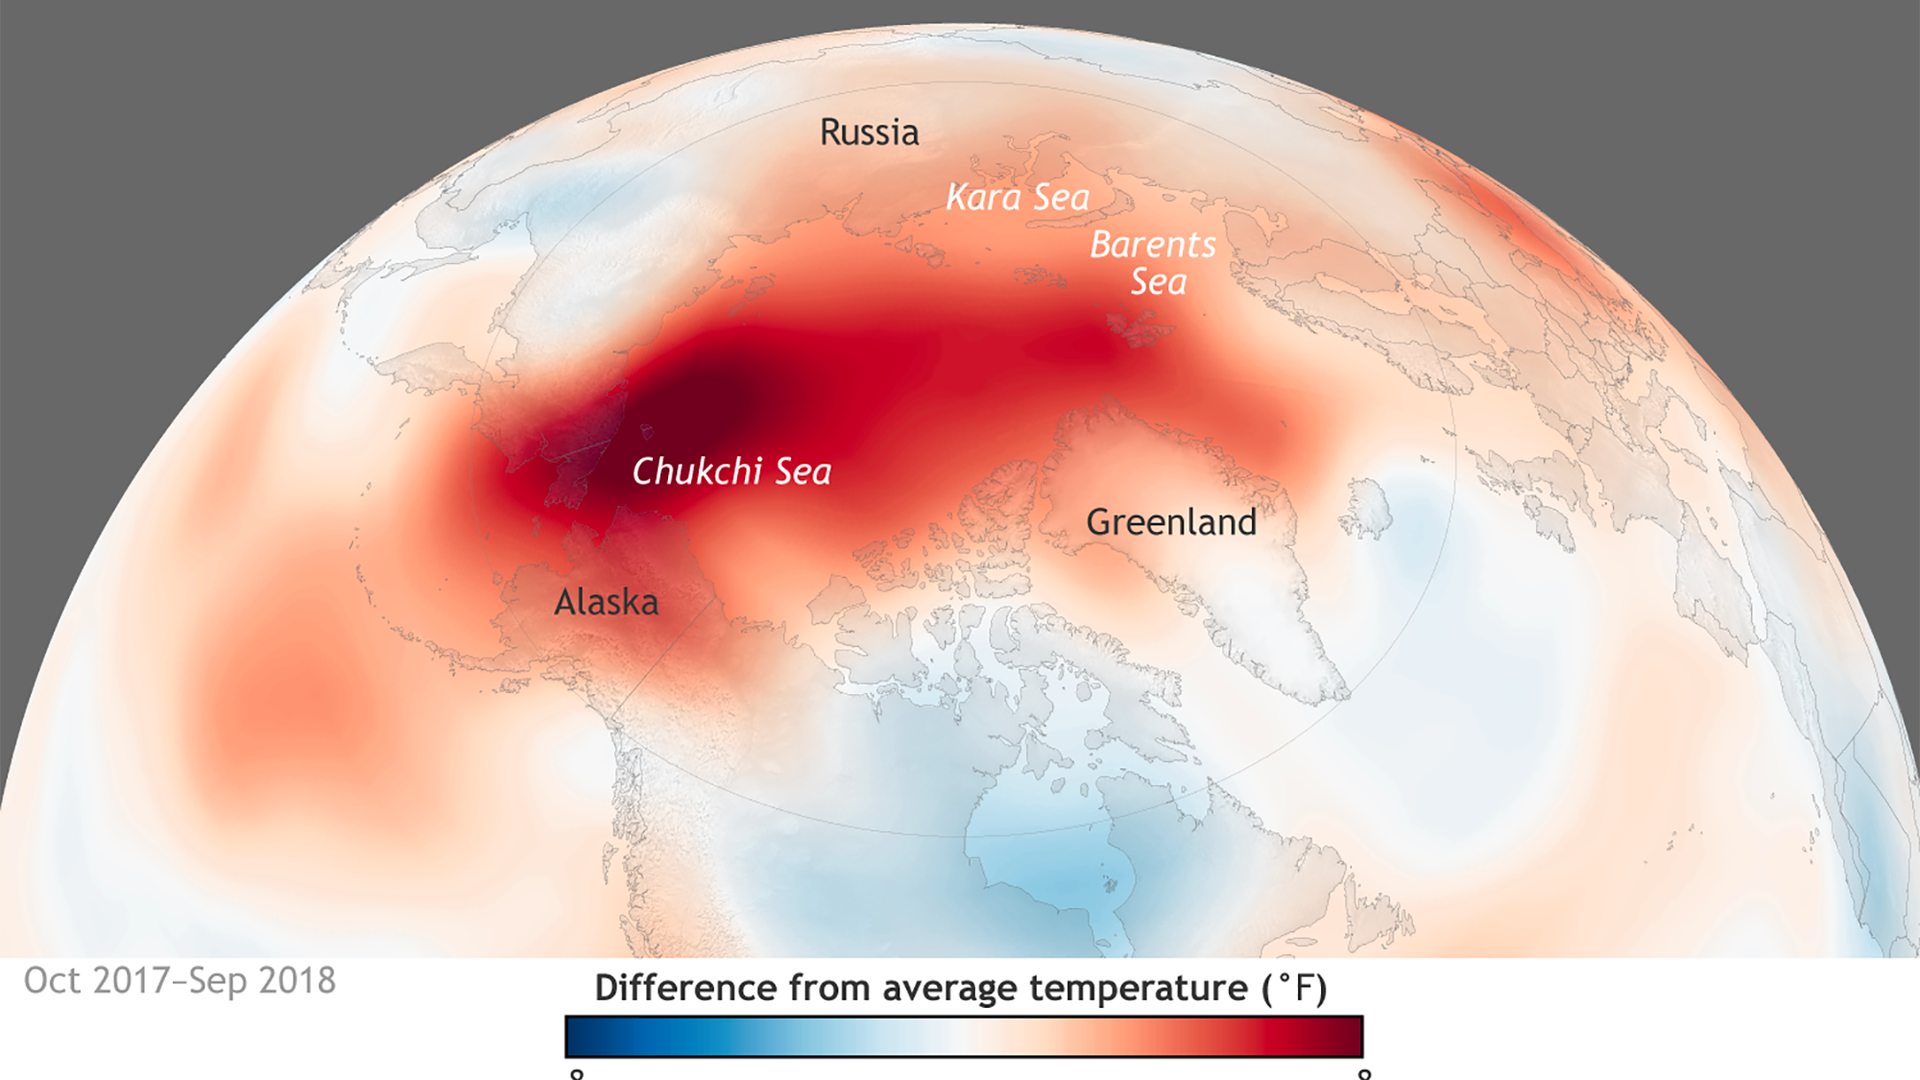 Heat map of Arctic surface temperature anomalies